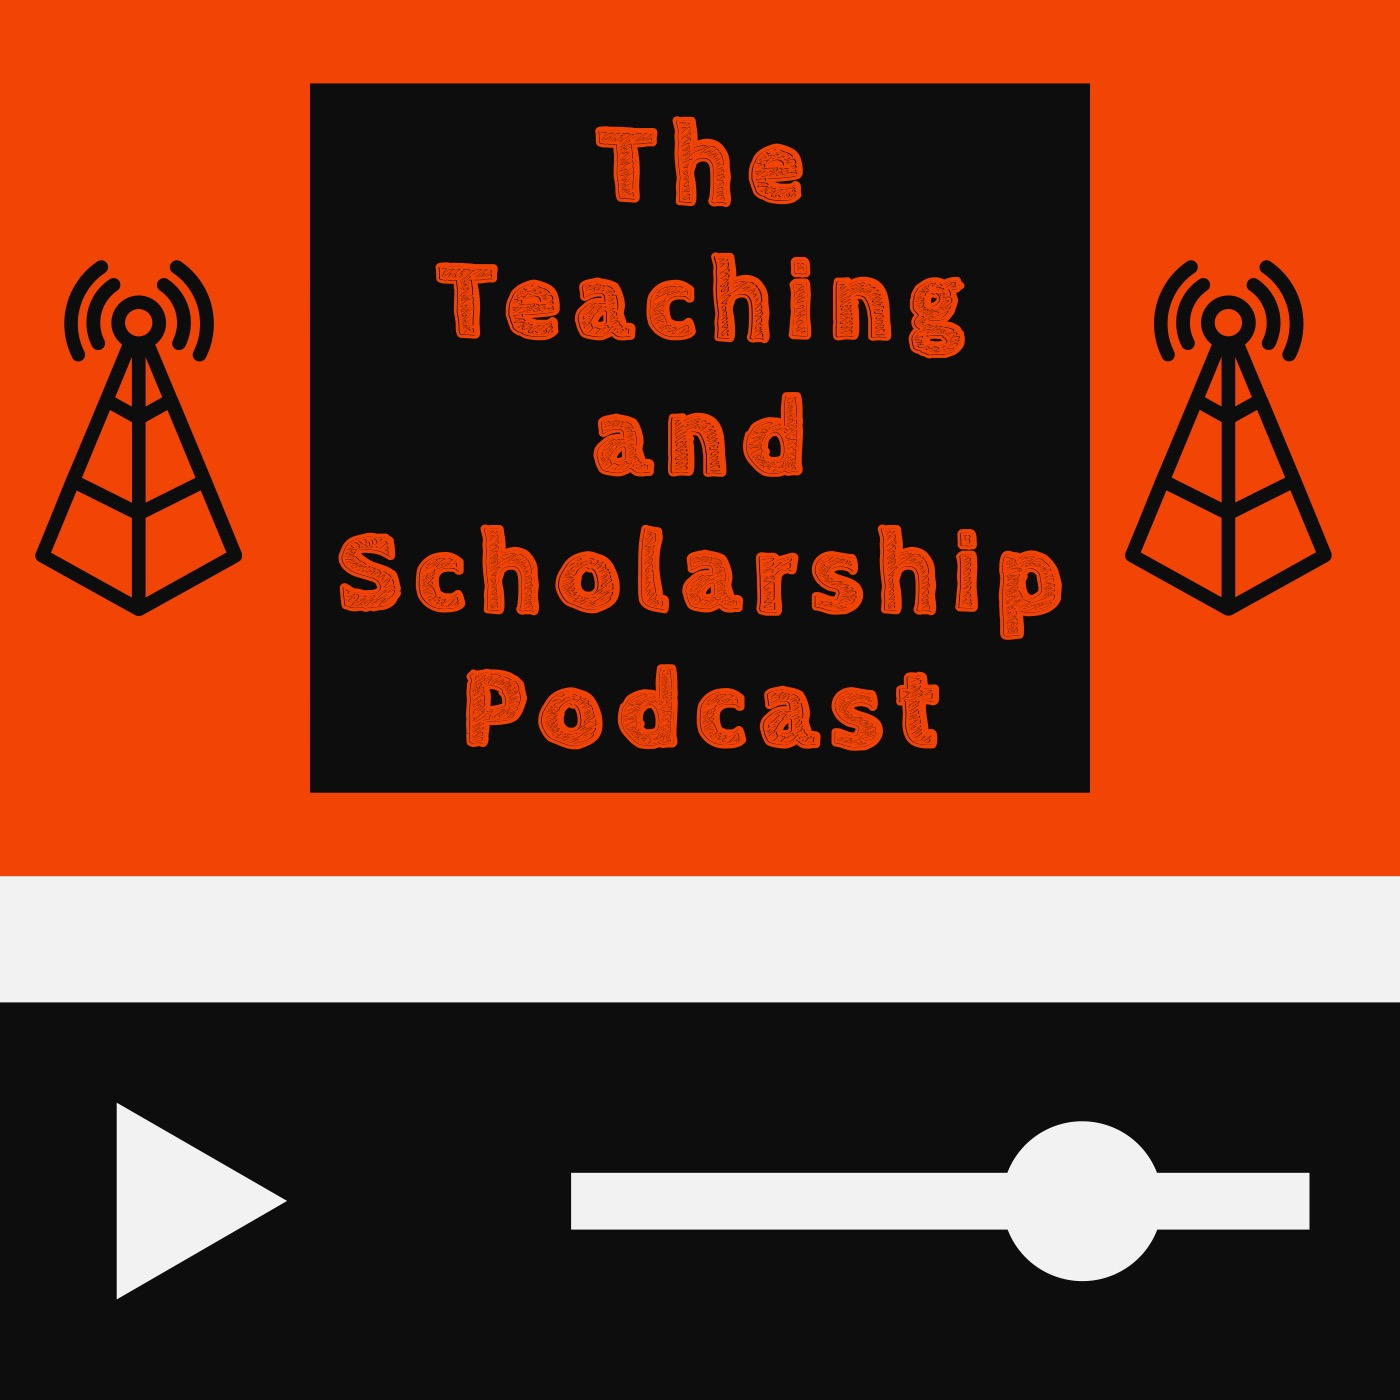 The Teaching and Scholarship Podcast show art